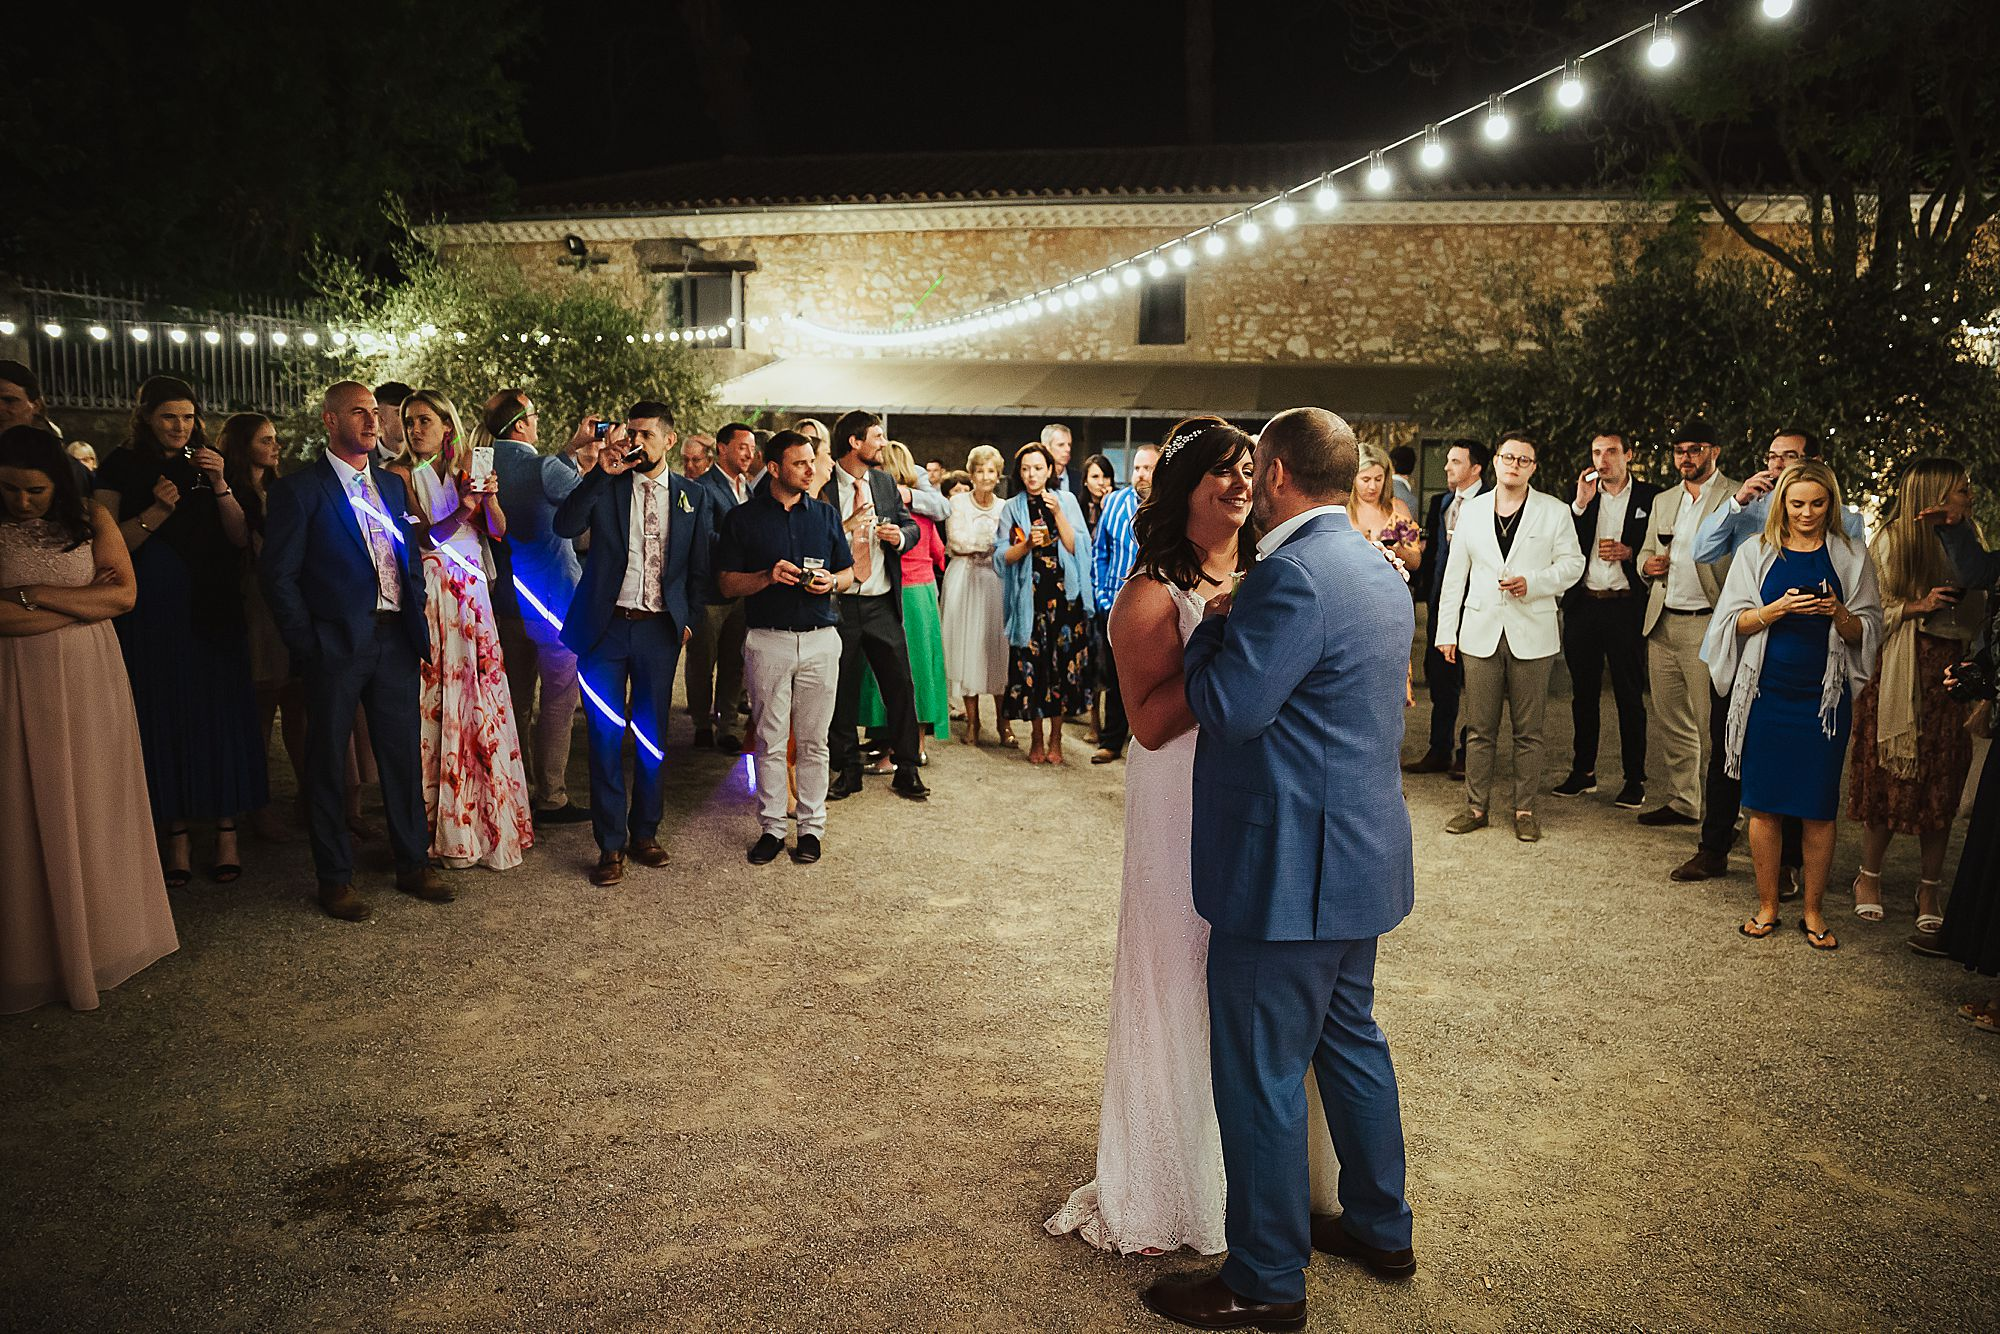 Domaine de la Grangette weddings